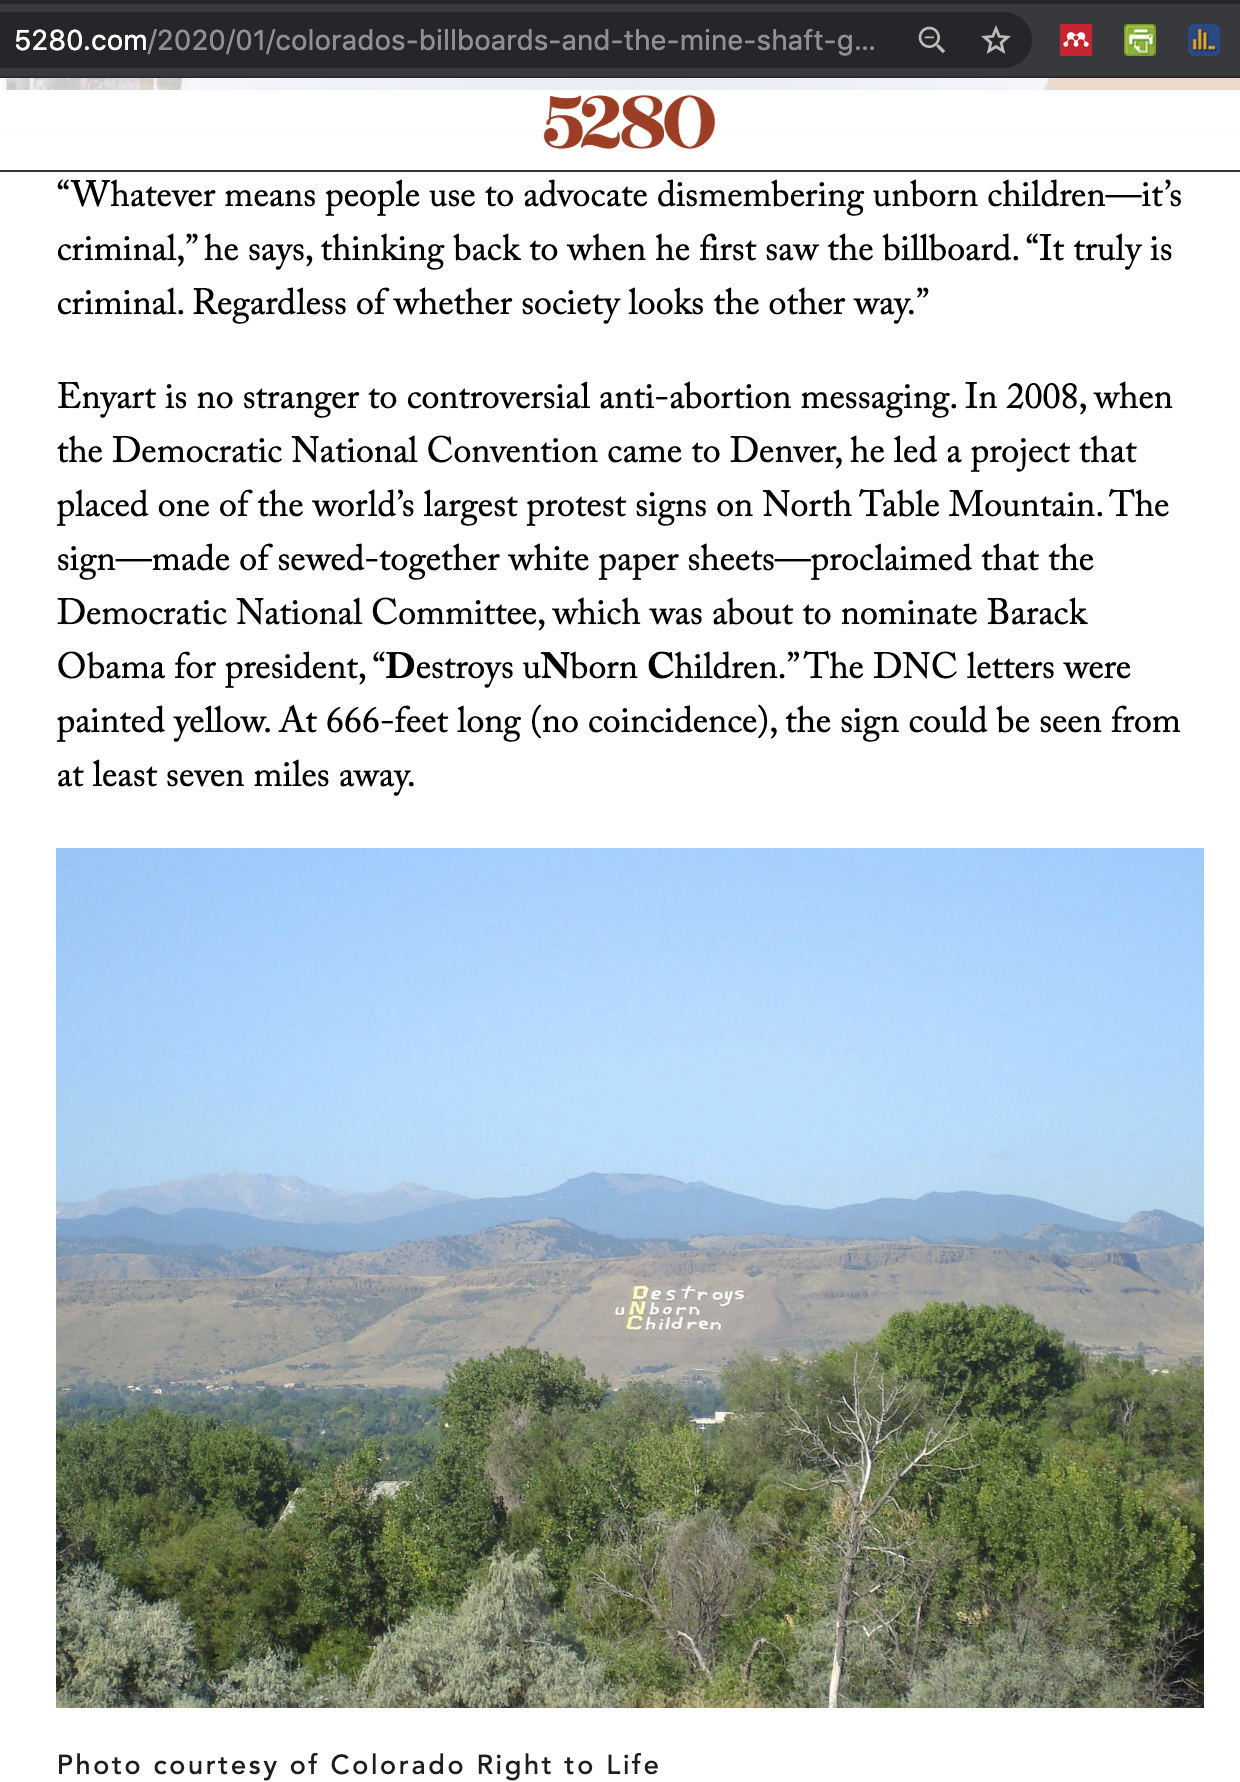 5280 Magazine reports on CRTL's anti-abortion billboards and our sign on the mountain...